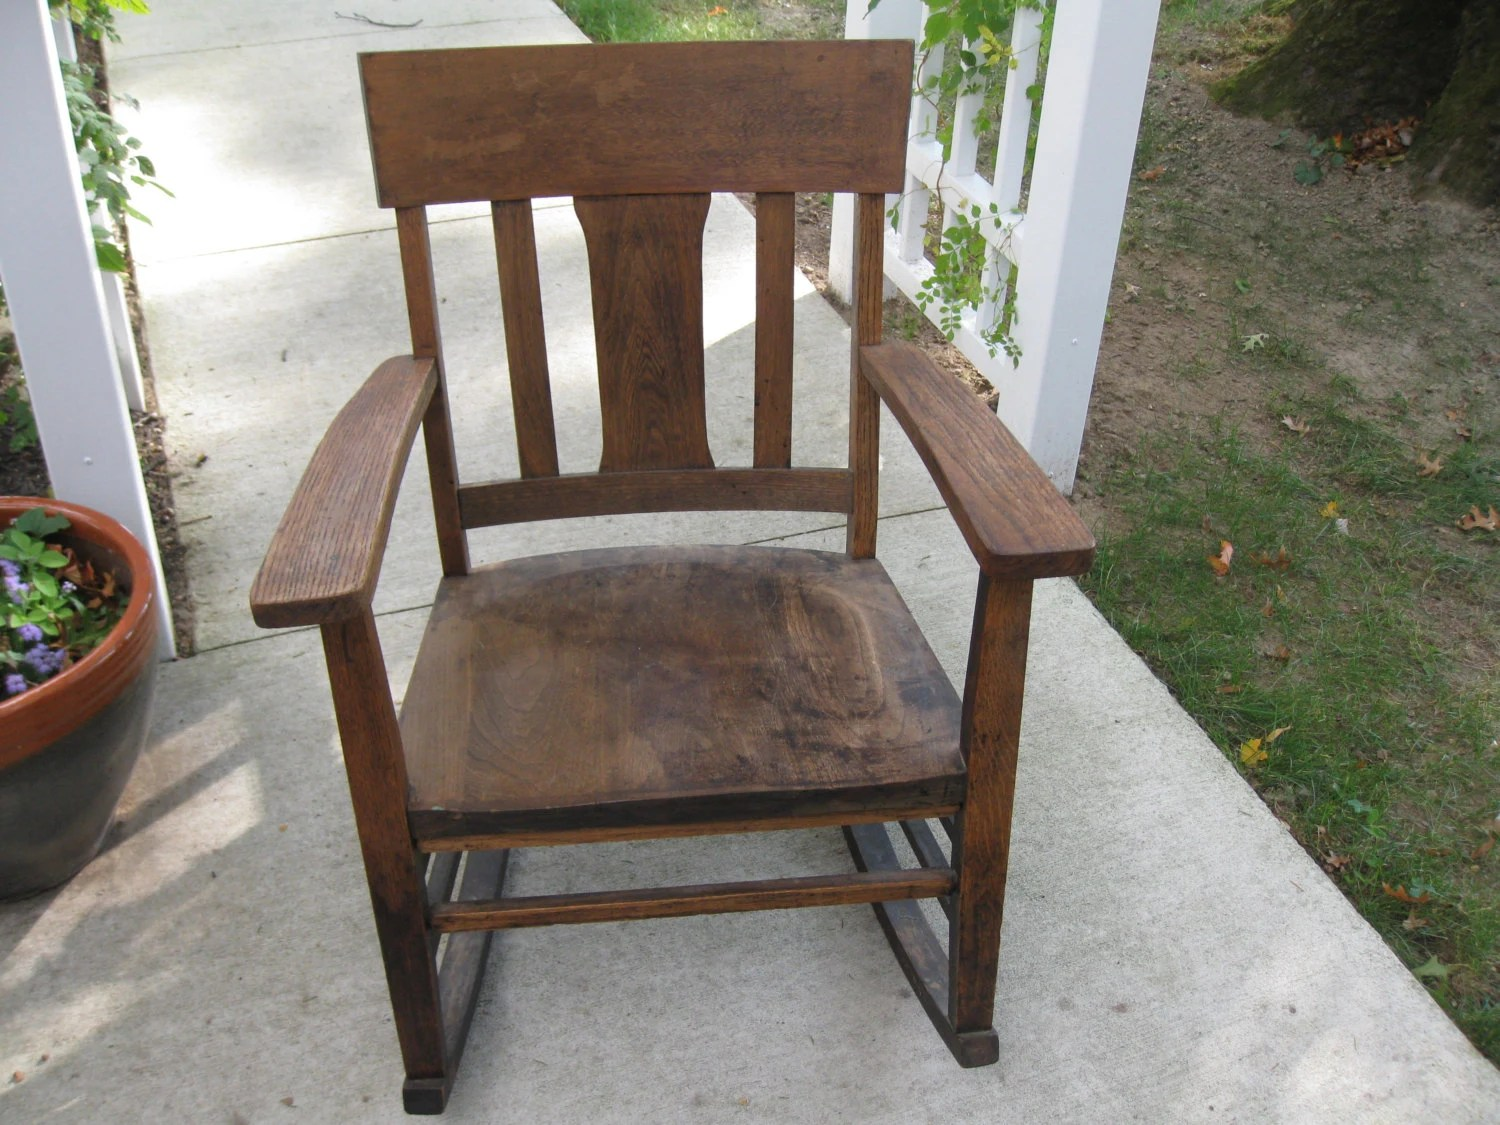 murphy chair company elderly chairs no 9673 late 1800 s to early 1900 oak rocking mission style local pick up due size